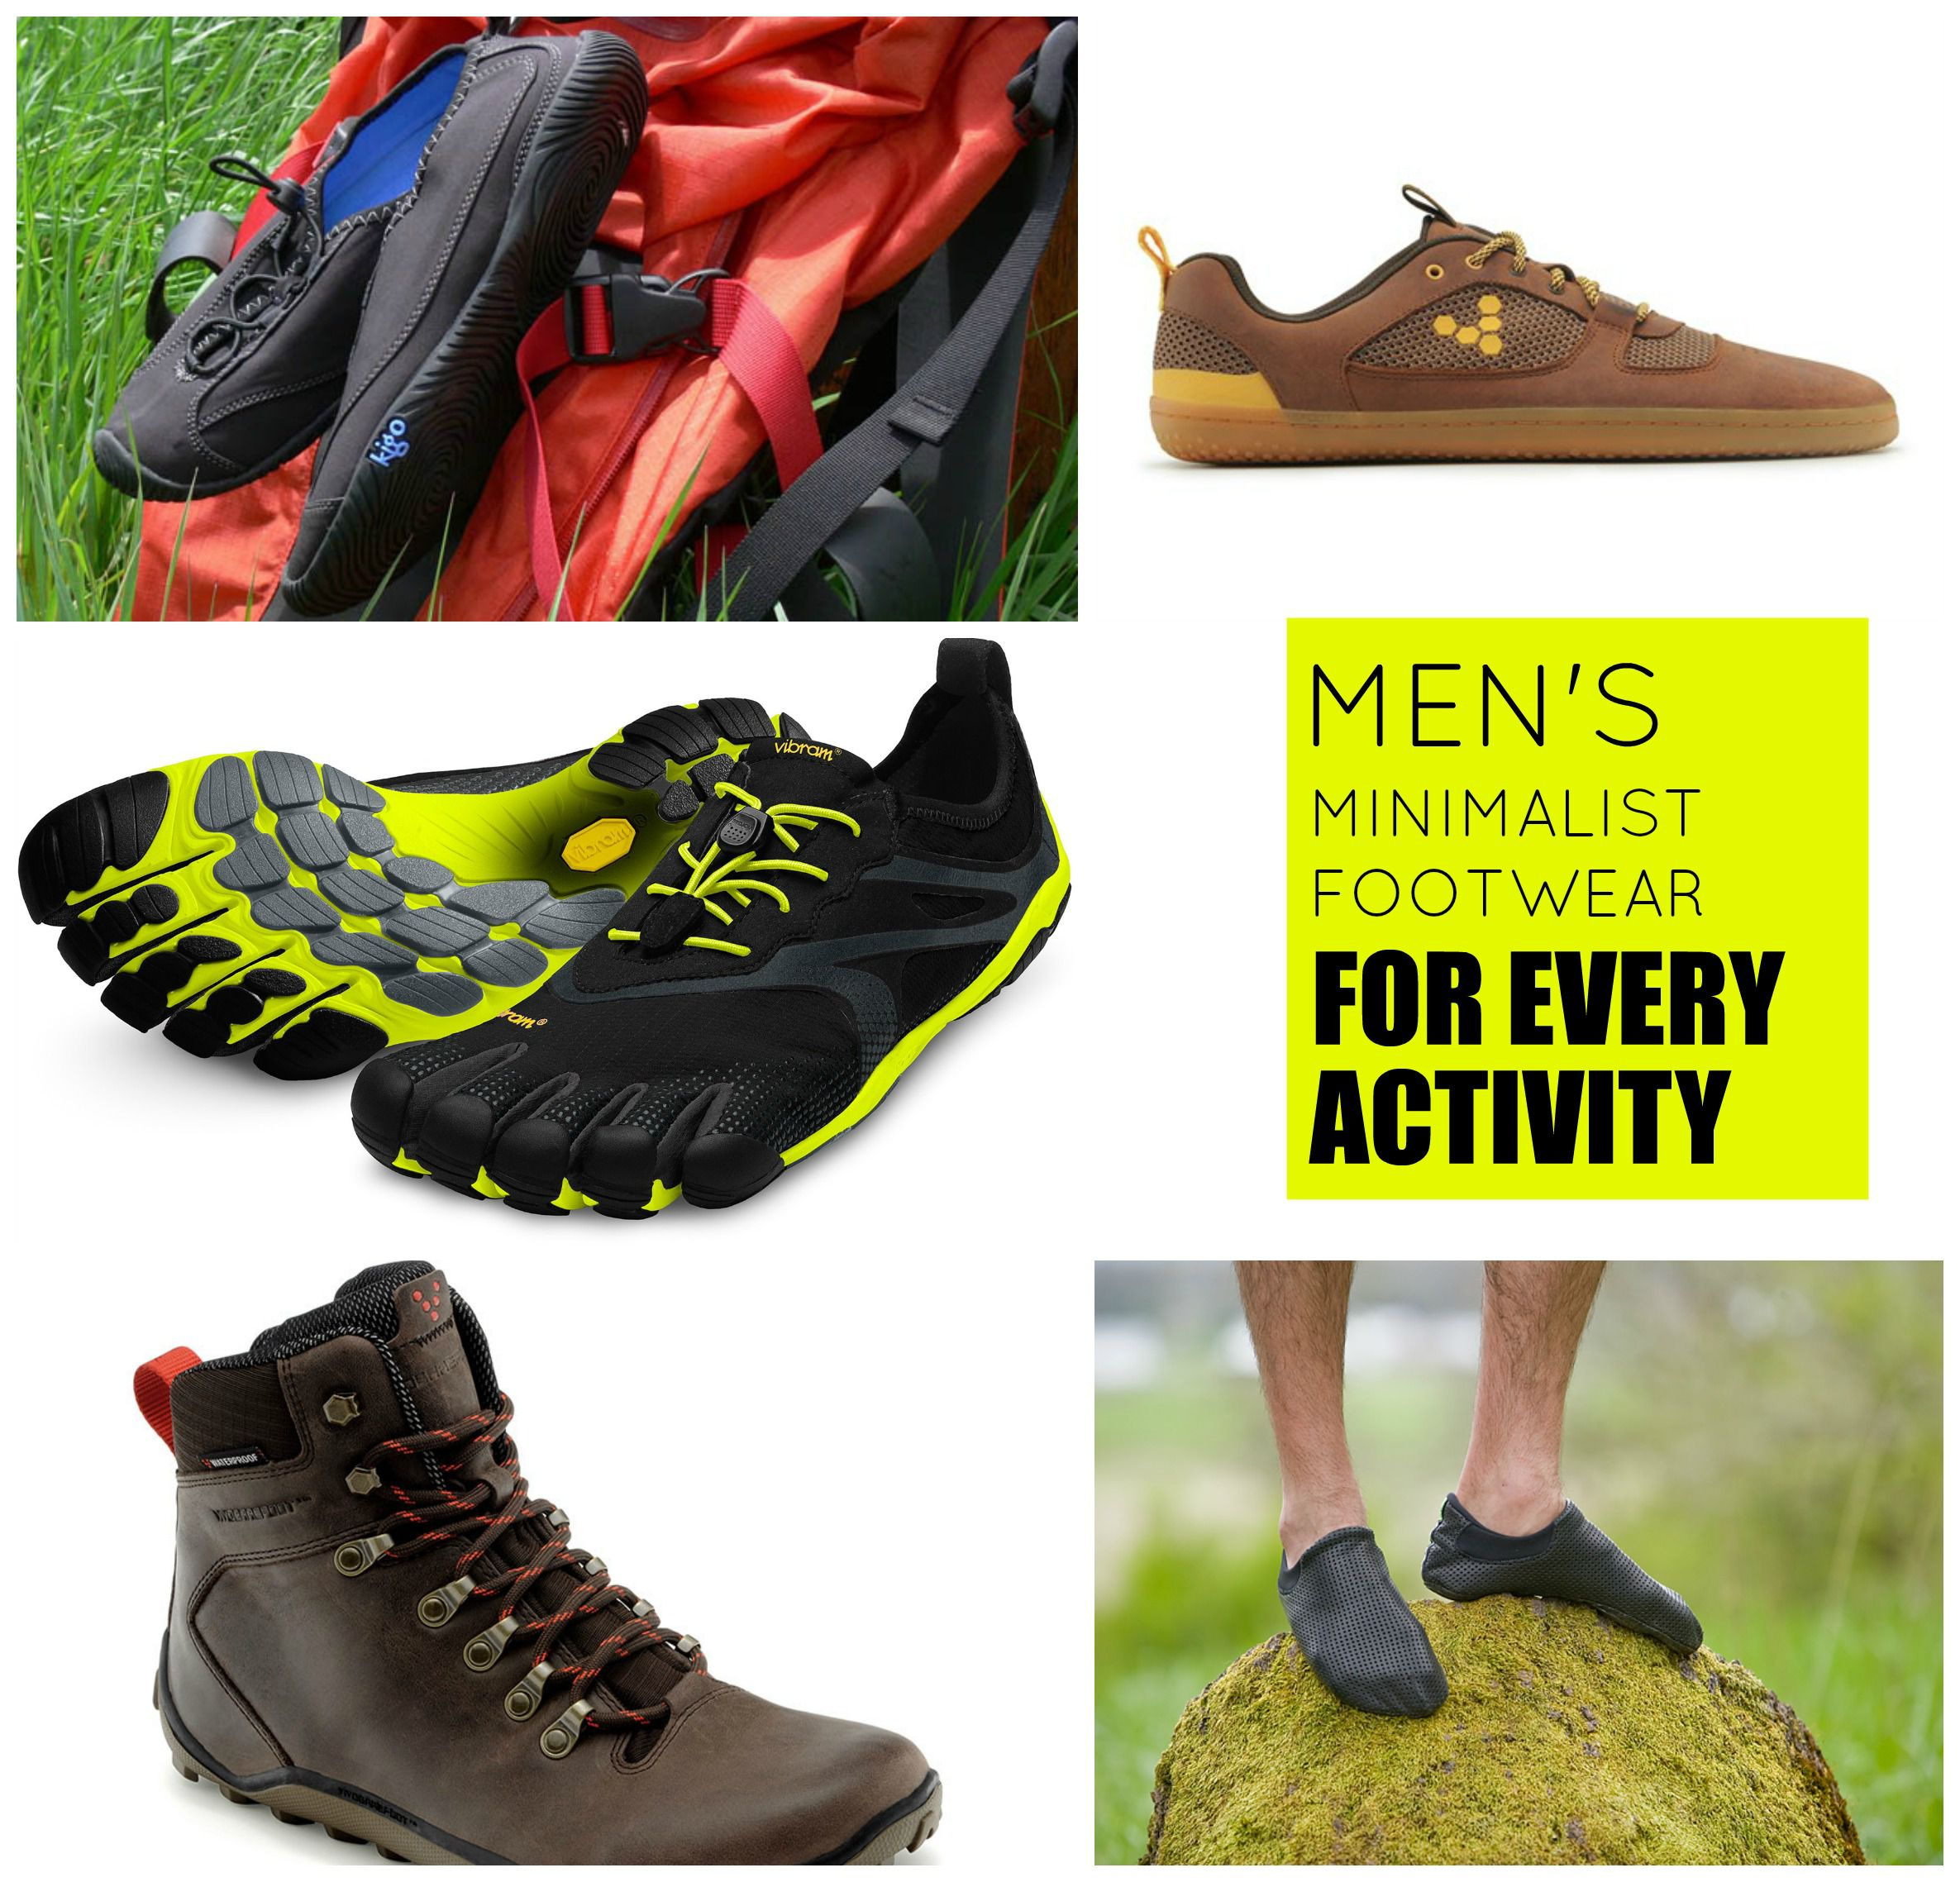 10 Great Minimalist Athletic Shoes For Men